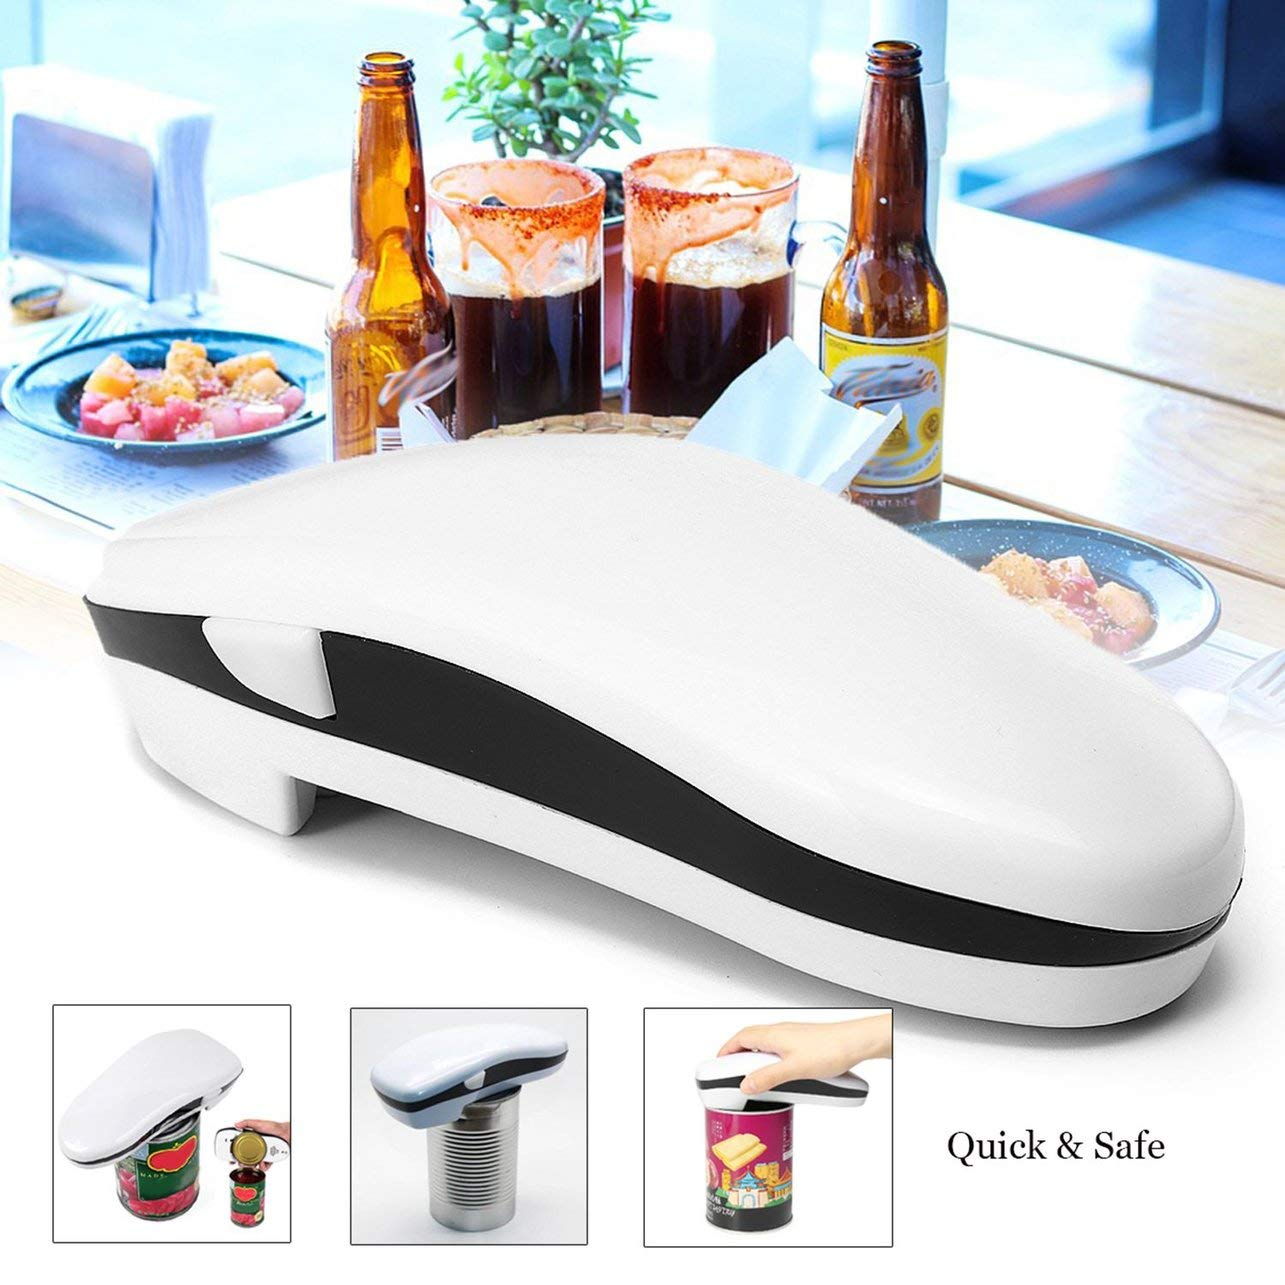 Automatic Bottle Opener Smooth Edge Battery Operated One Touch Can Opener Tin Bottle Opener for Restaurant Kitchen(Color:White) WOSOSYEYO